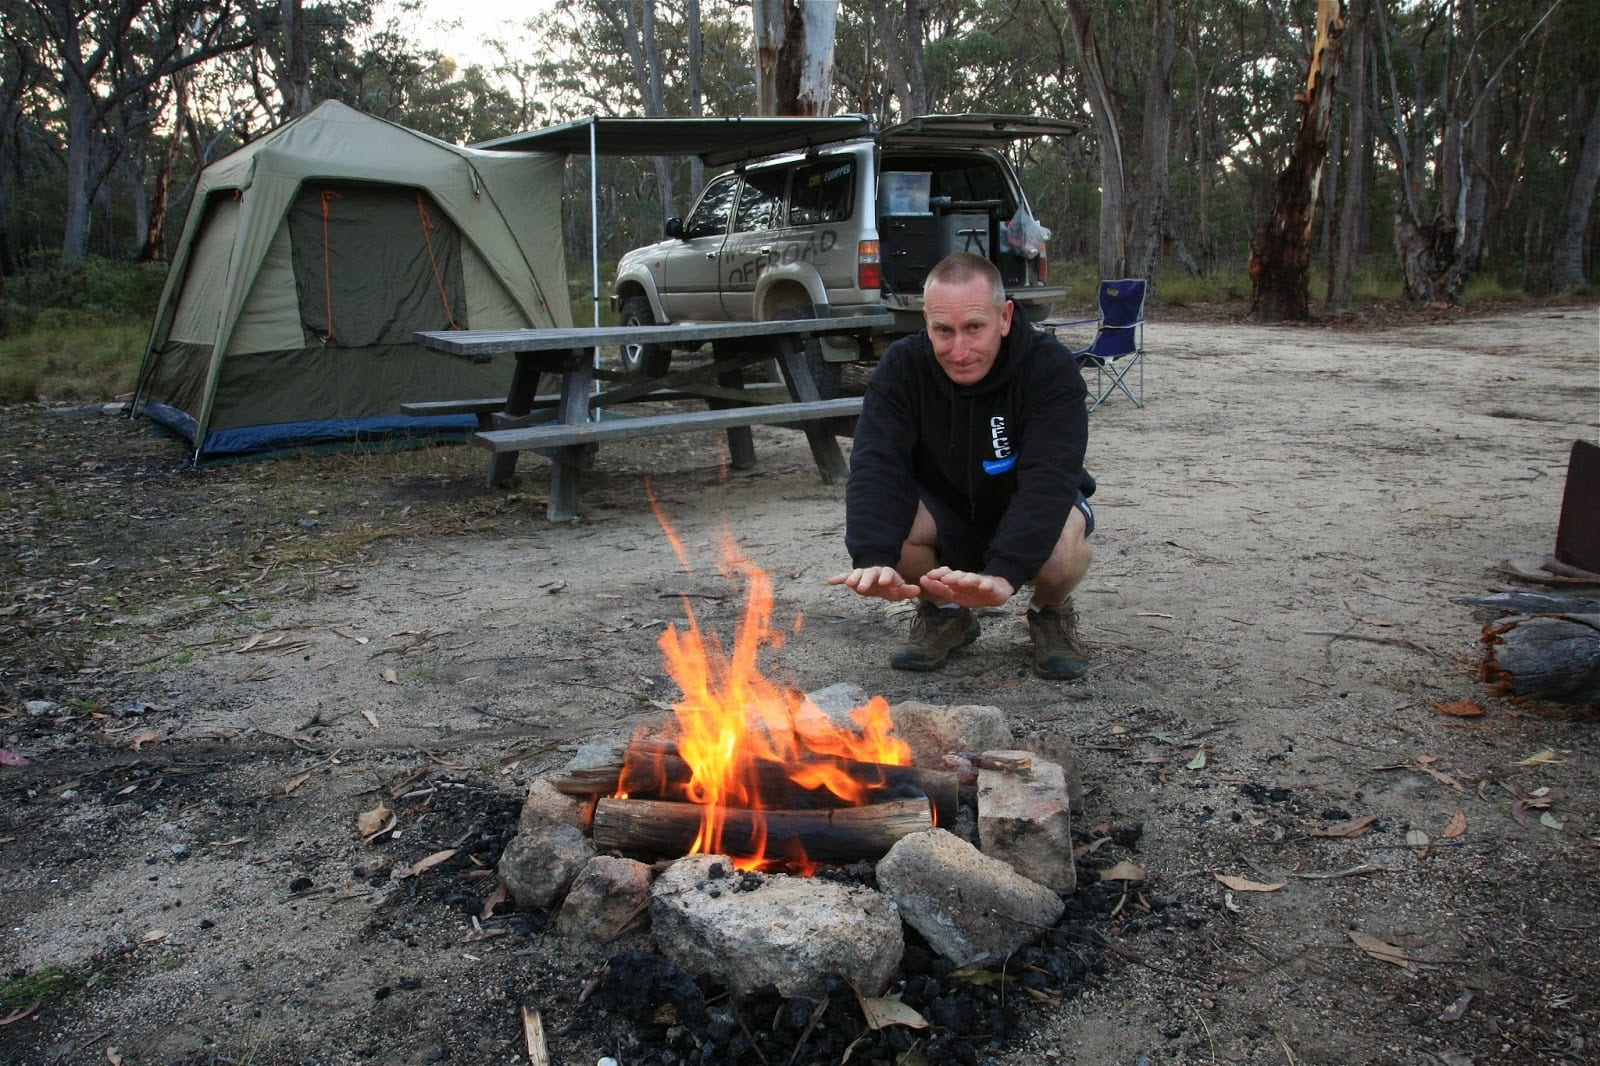 Kev smith from woolgoolgaoffroad squatting down and warming his hands by the campsite fire. His camping tent and four wheel drive in the background and surrounded by australian bush. Photo is part of the Kev Smith from woolgoolgaoffroad ambassador profile for North Storm waterproof bags.